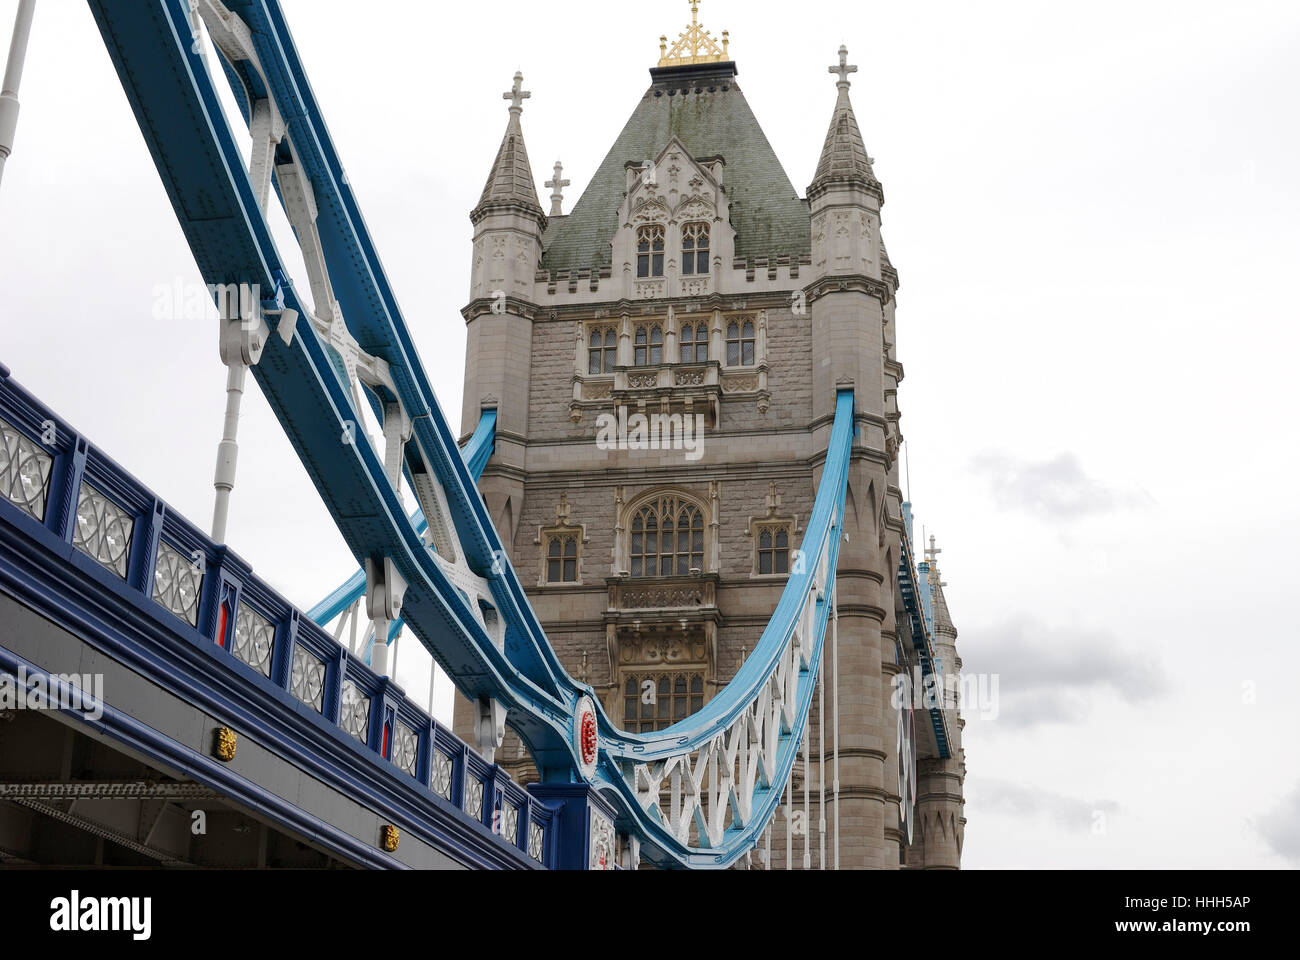 buildings, london, england, style of construction, architecture, architectural - Stock Image